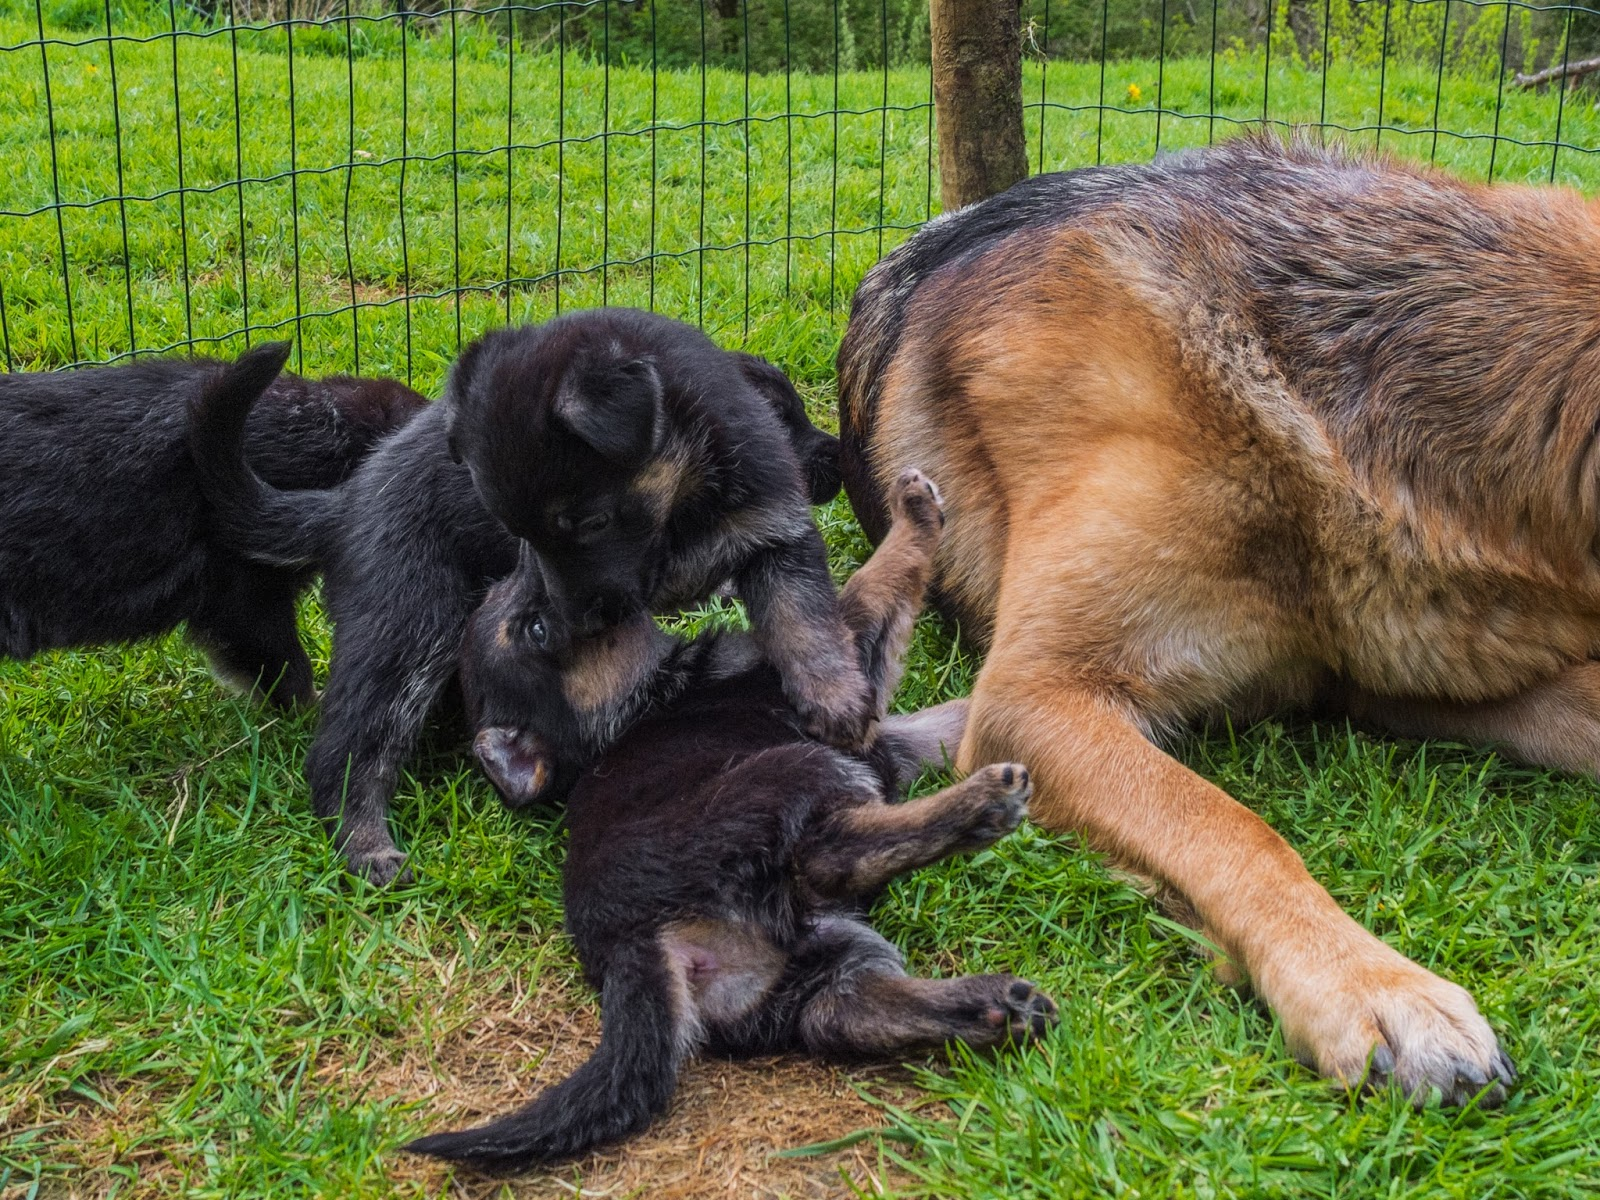 Month old German Shepherd puppies playing on the grass next to mom.